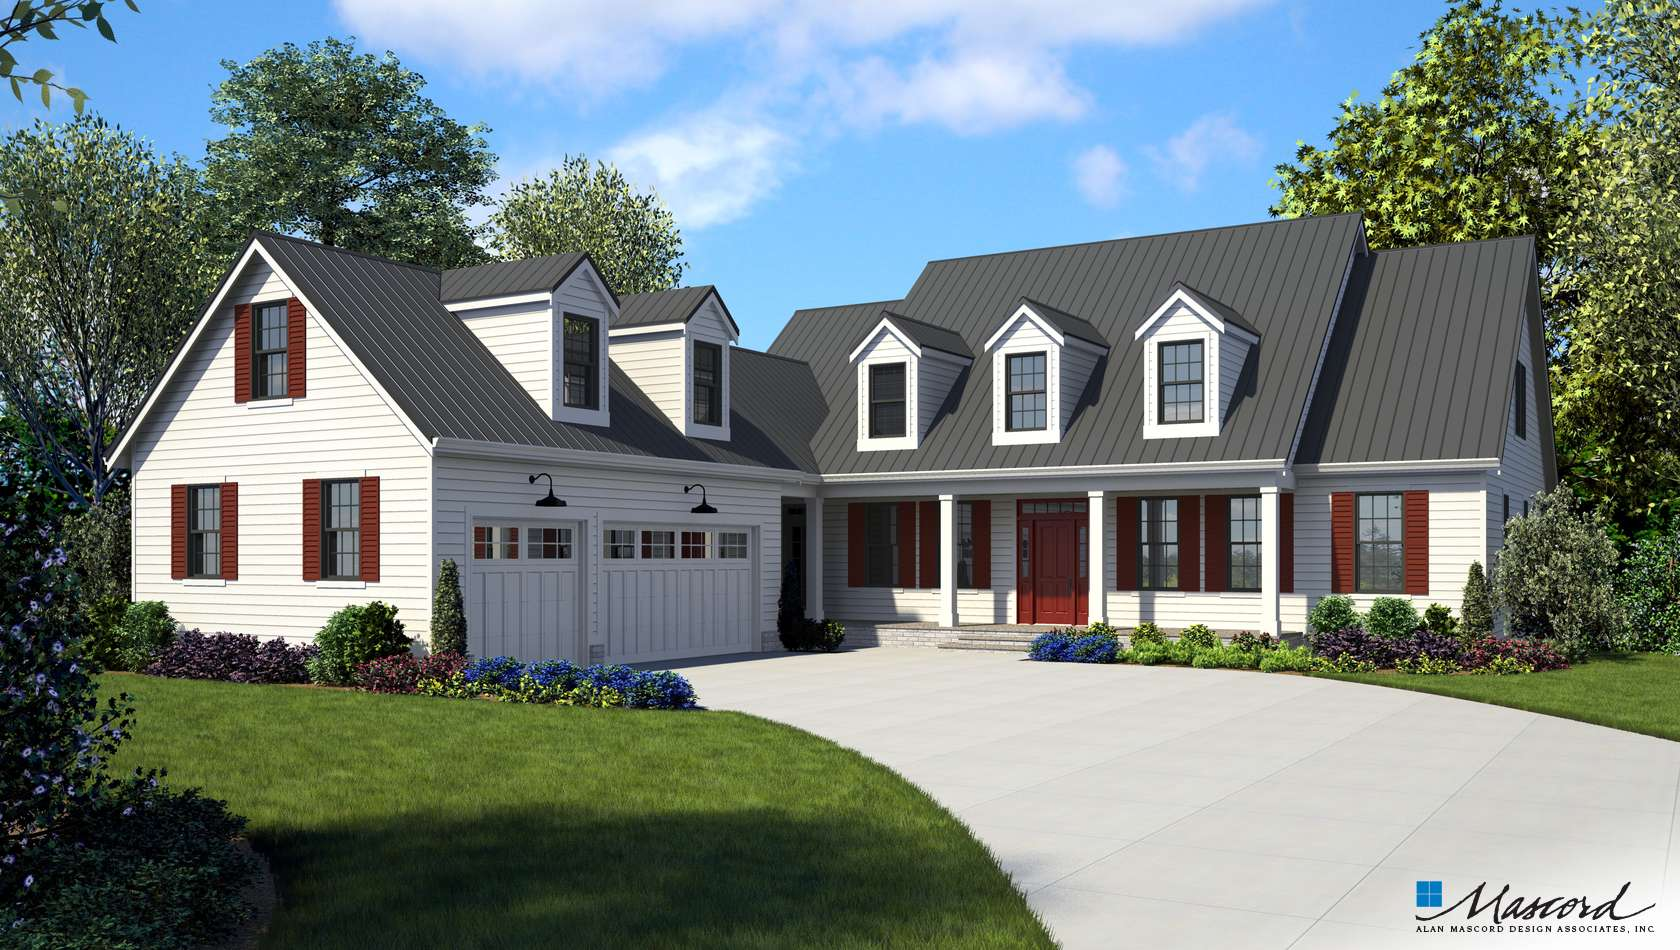 Main image for house plan 22120: The Covington